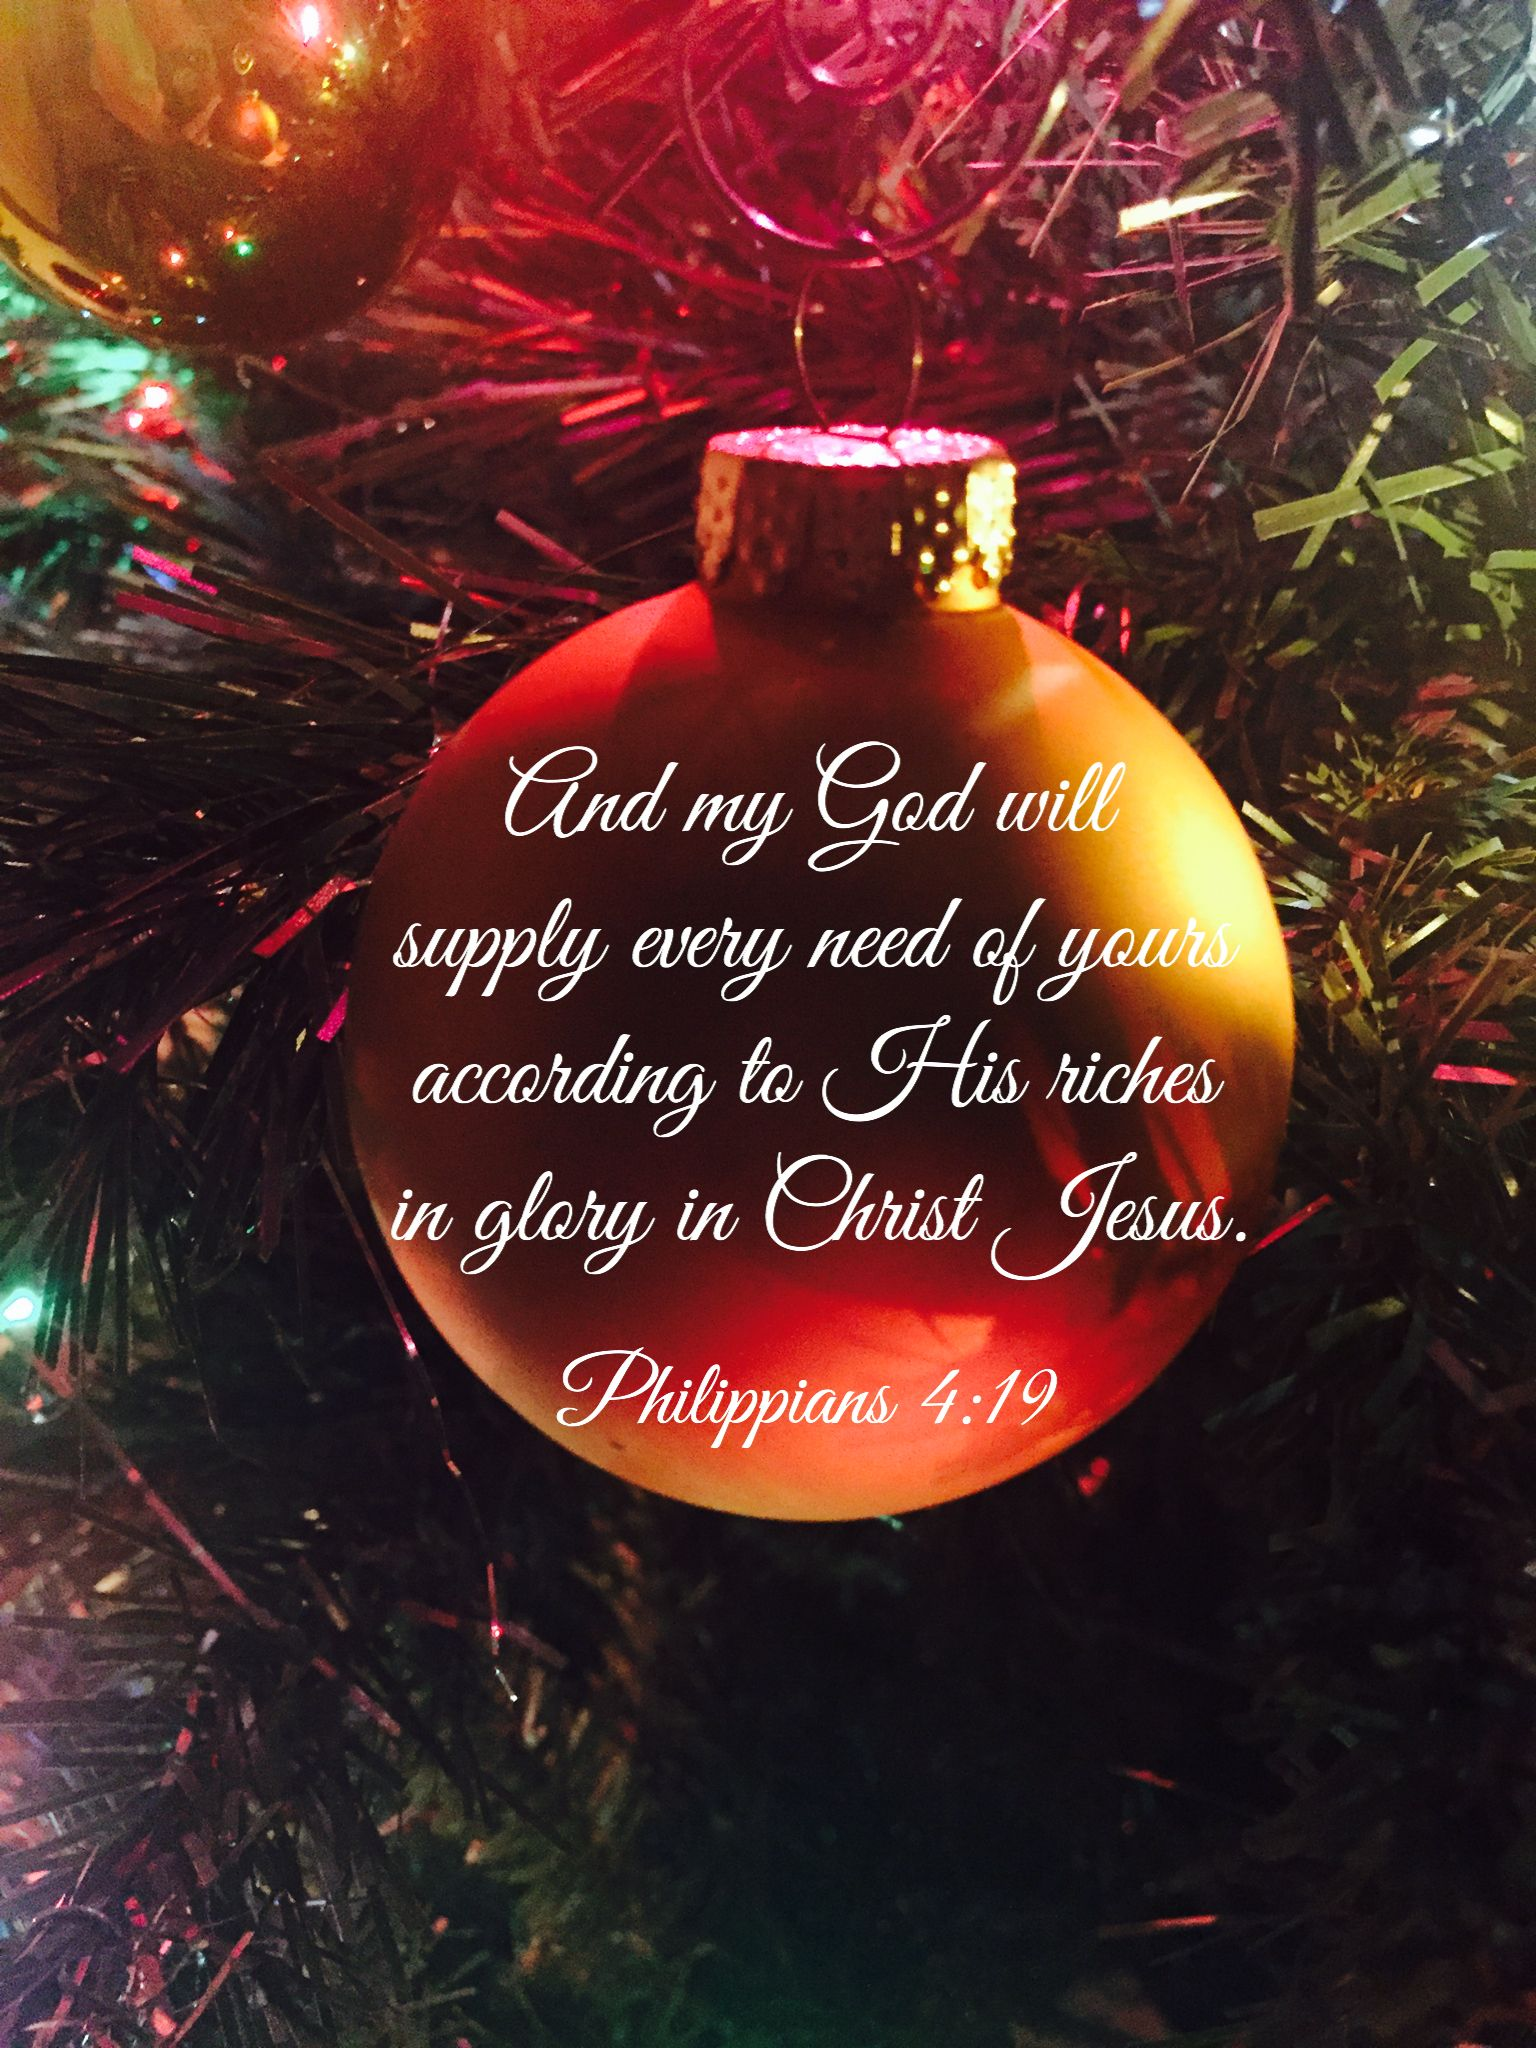 Pin by mildred williams on words of wisdom pinterest scriptures god cozy christmaschristmas qouteschristmas greetingschristmas photosencouraging bible versesbible m4hsunfo